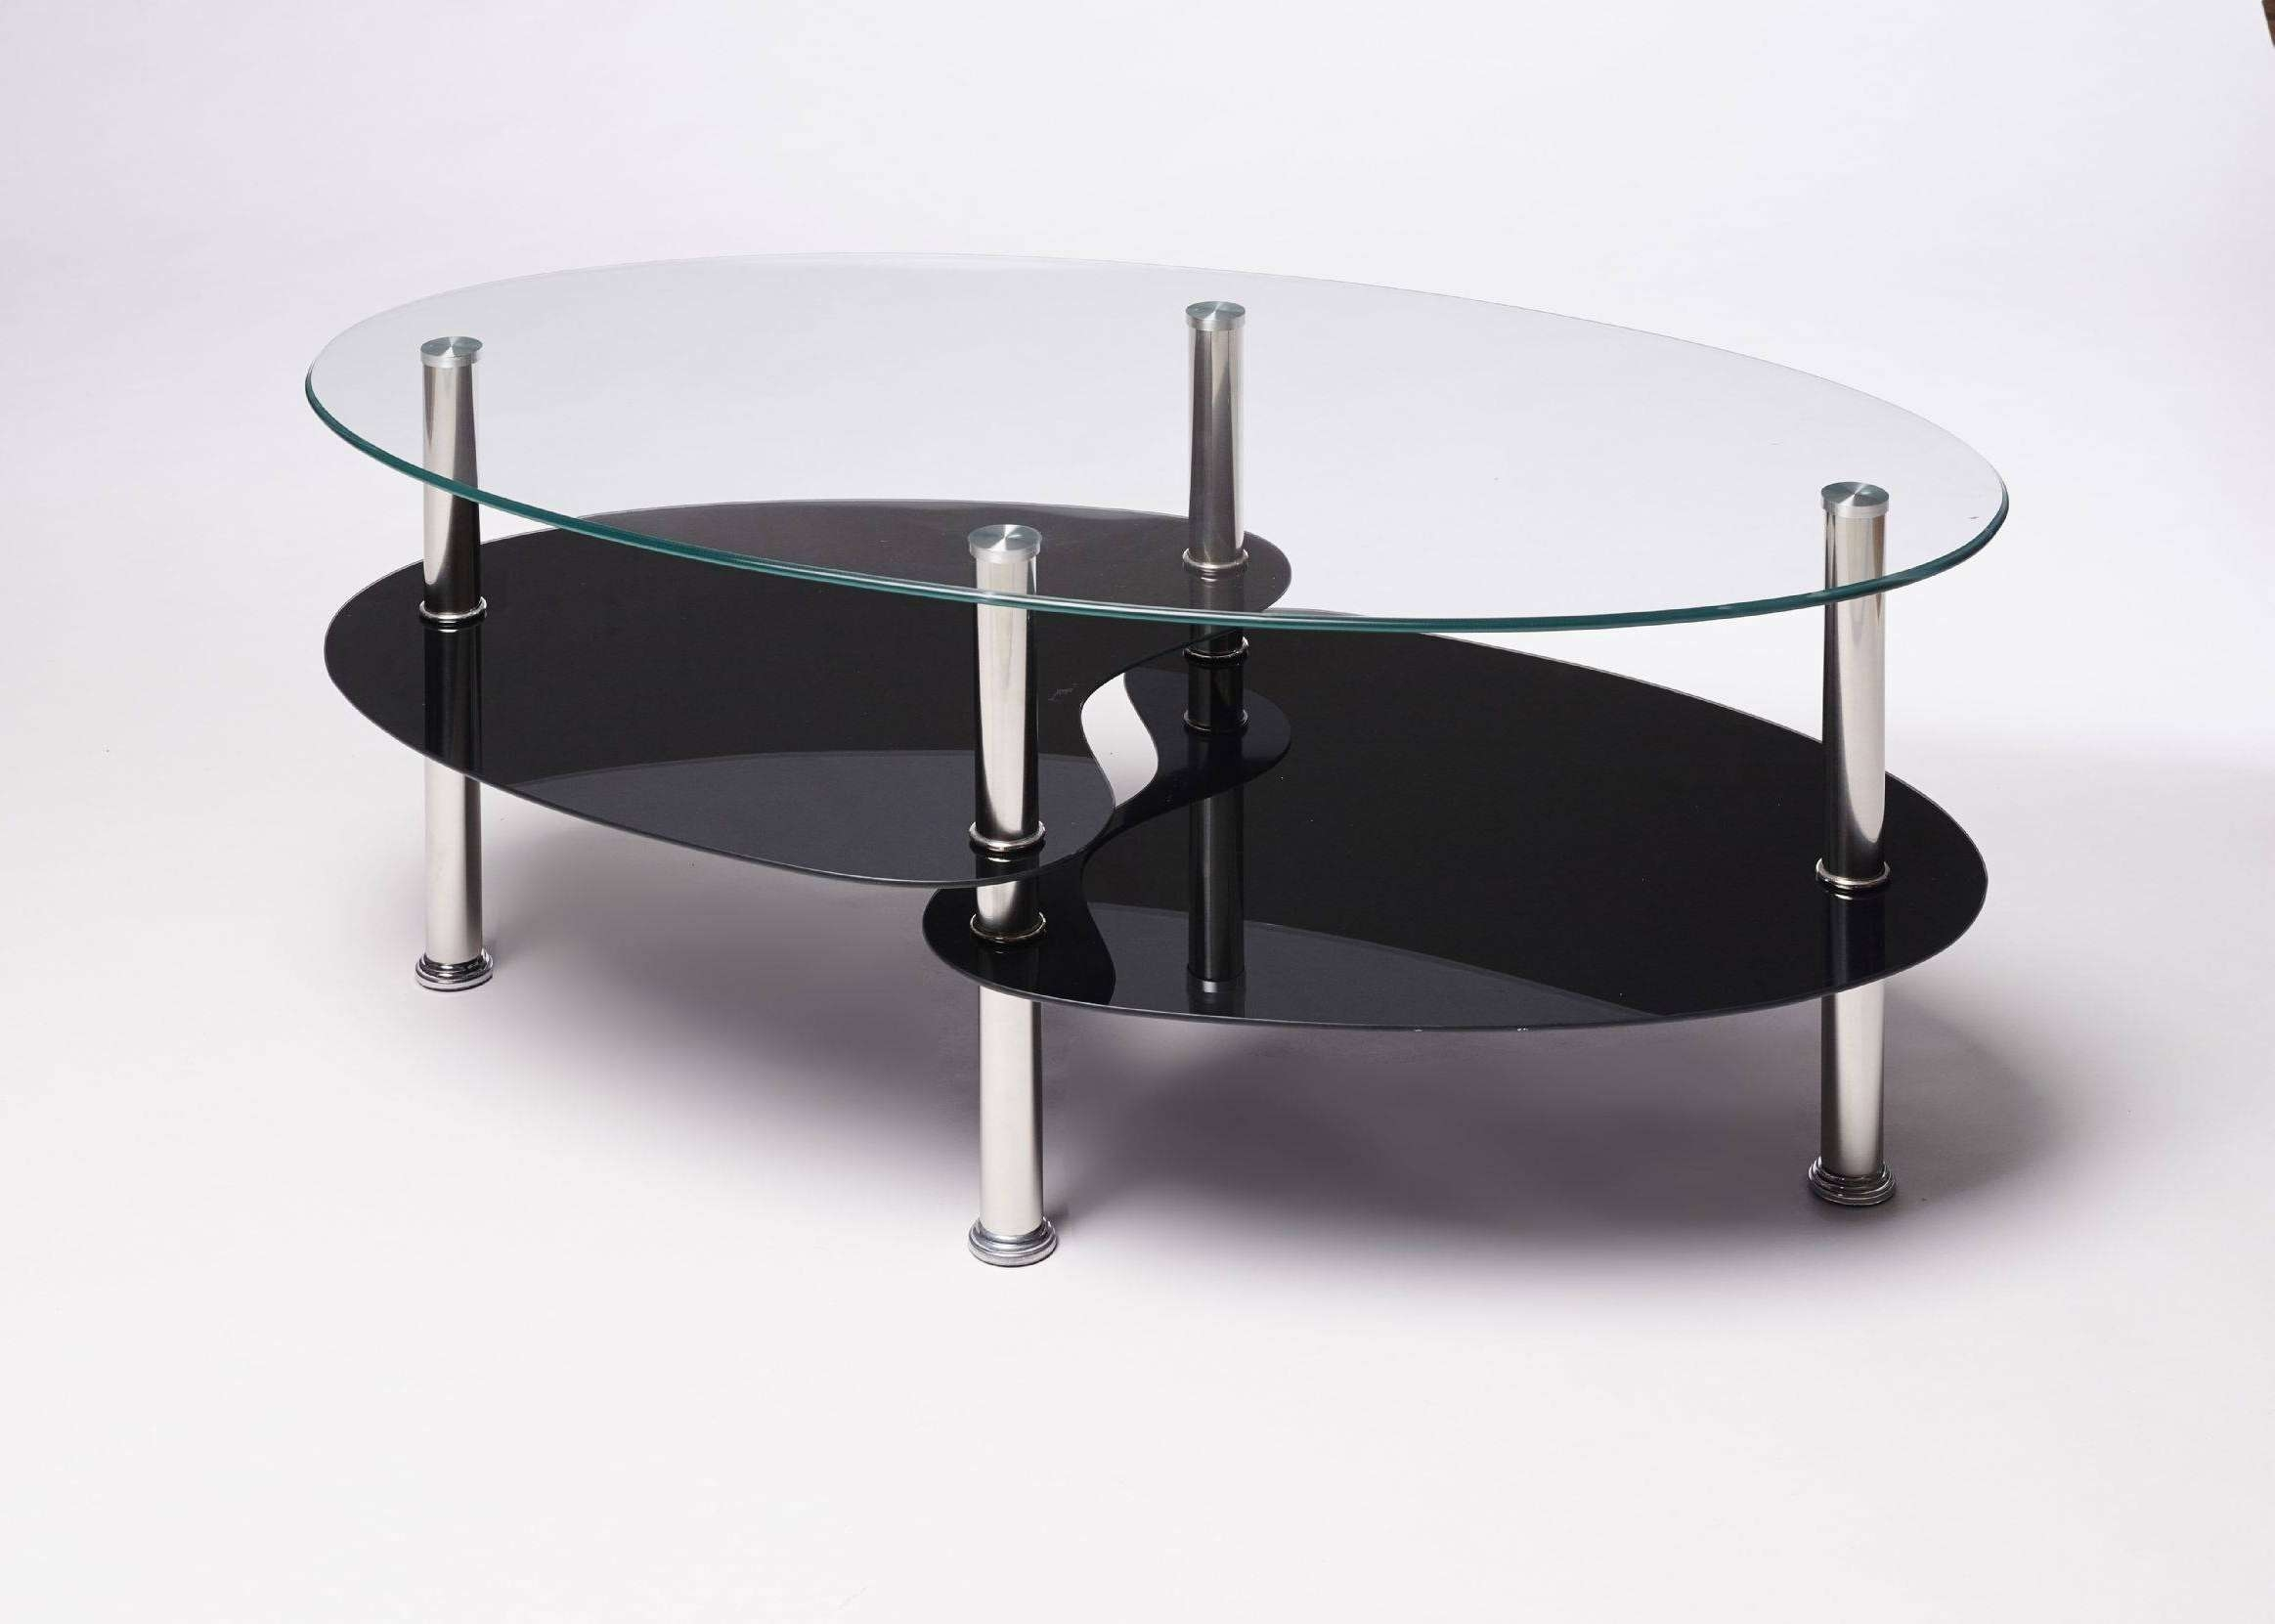 20 Collection of Black Oval Coffee Tables